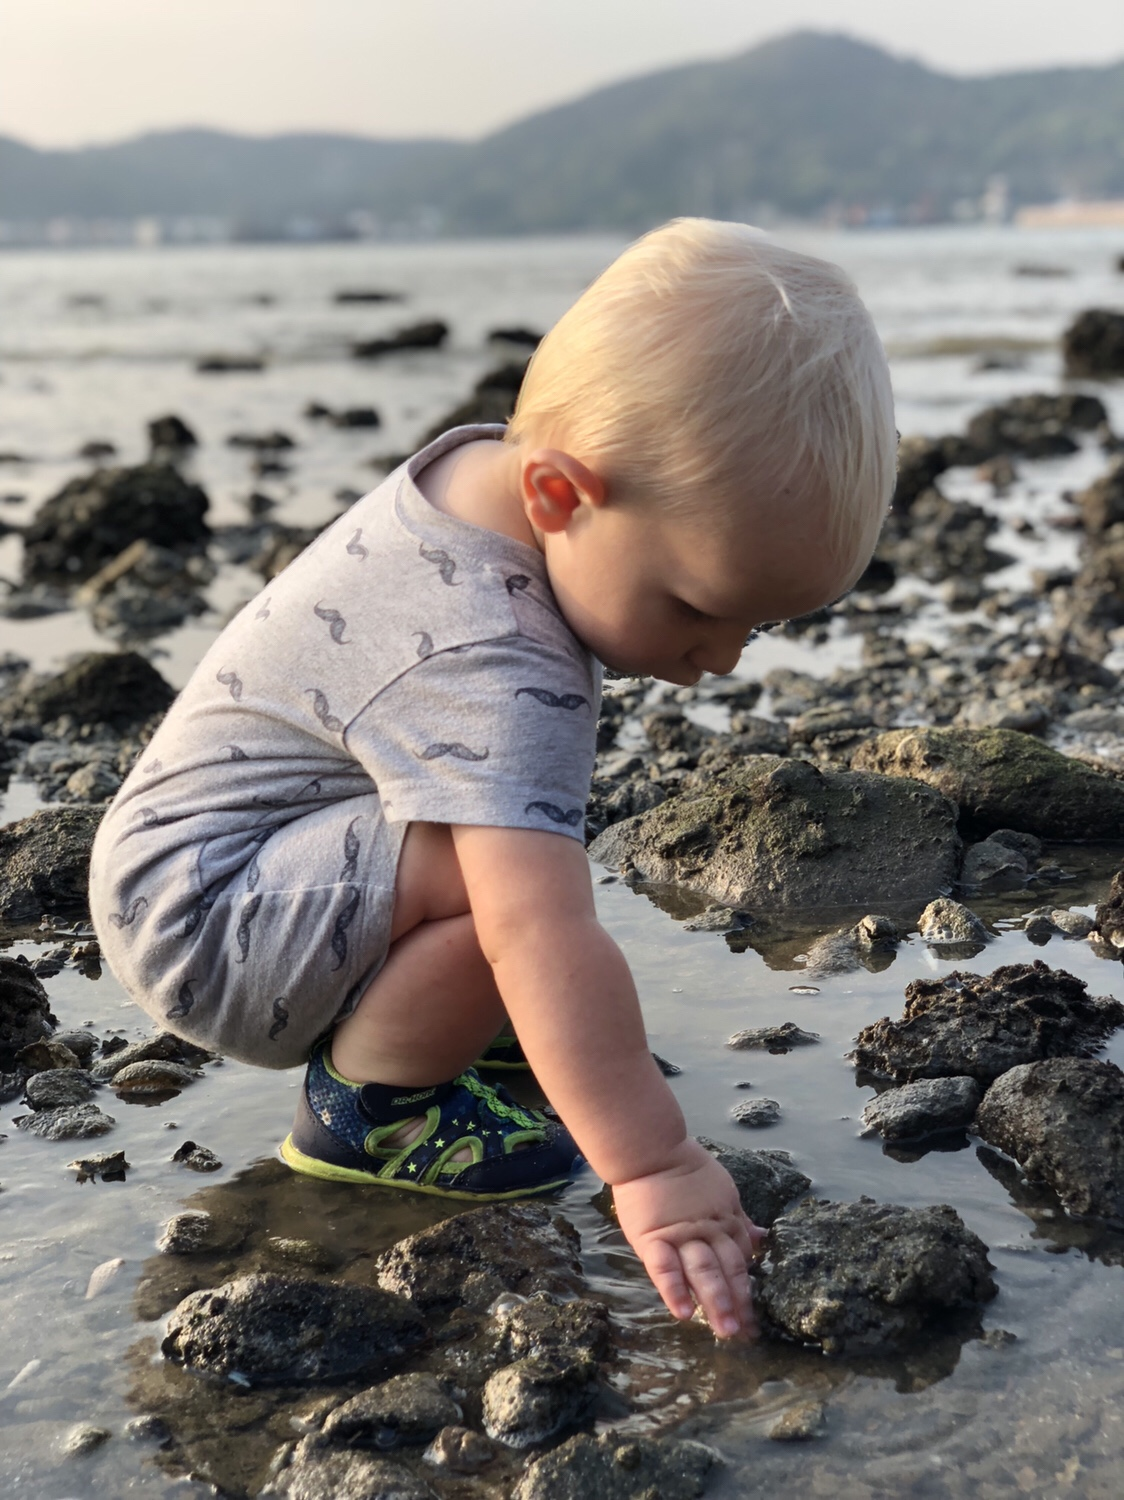 child explores the beach | questions to ask yourself when studying tide pools | tide pools | Hong Kong | children science | teaching resources | Homeschooling | Unschooling | sealife science lessons | This Indulgent Life